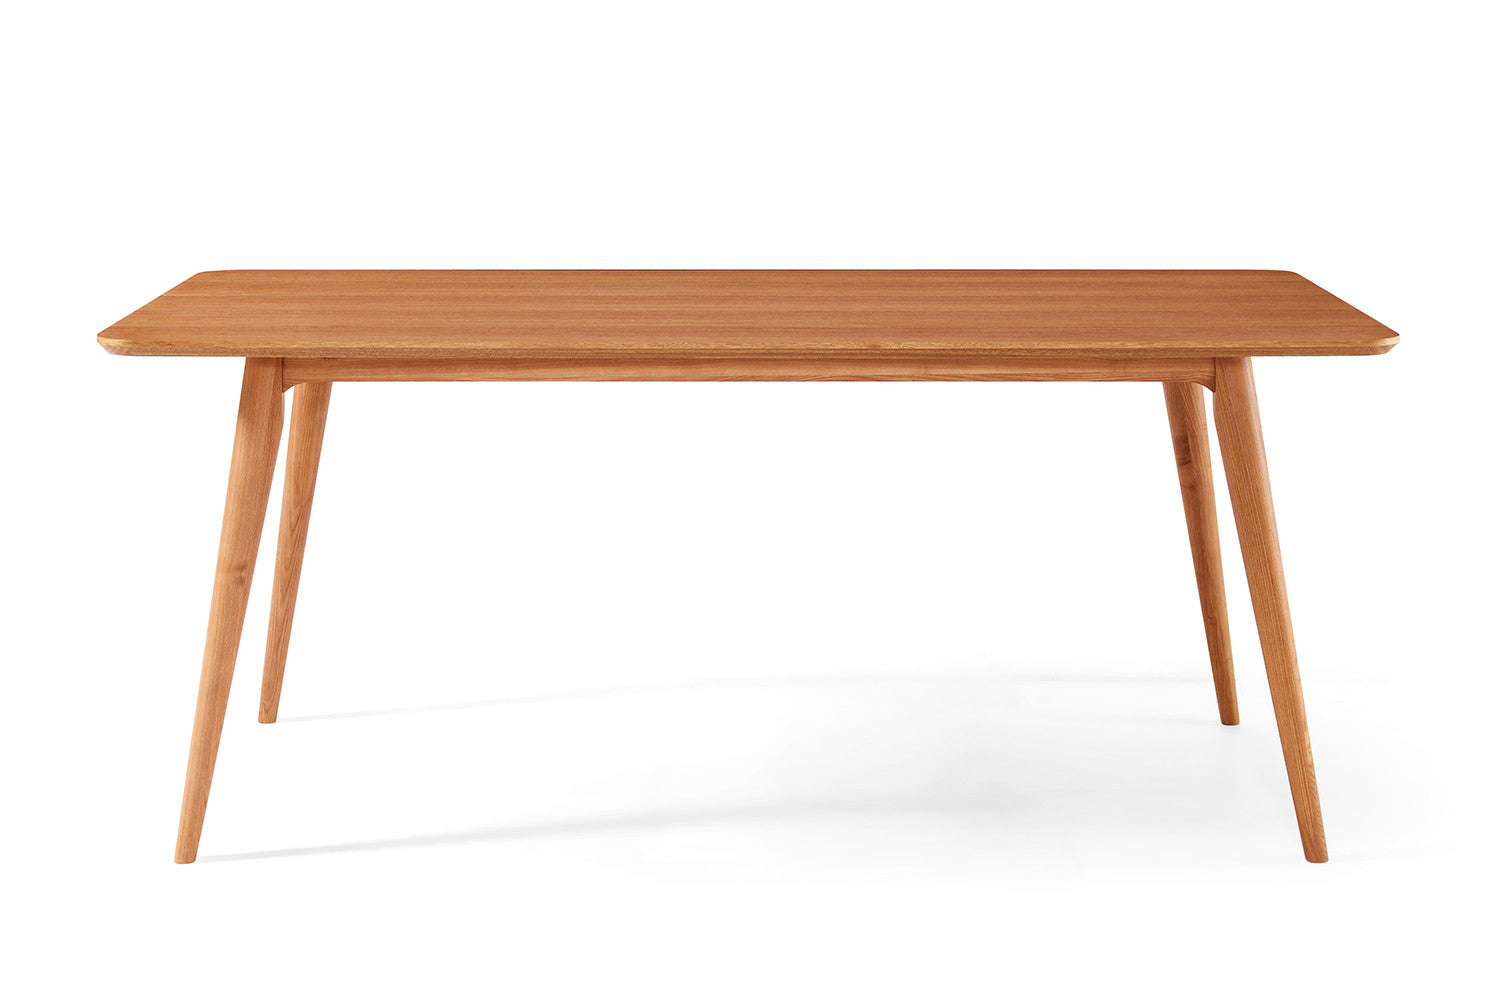 table de salle manger design en bois julia dewarens On table de salle a manger design scandinave